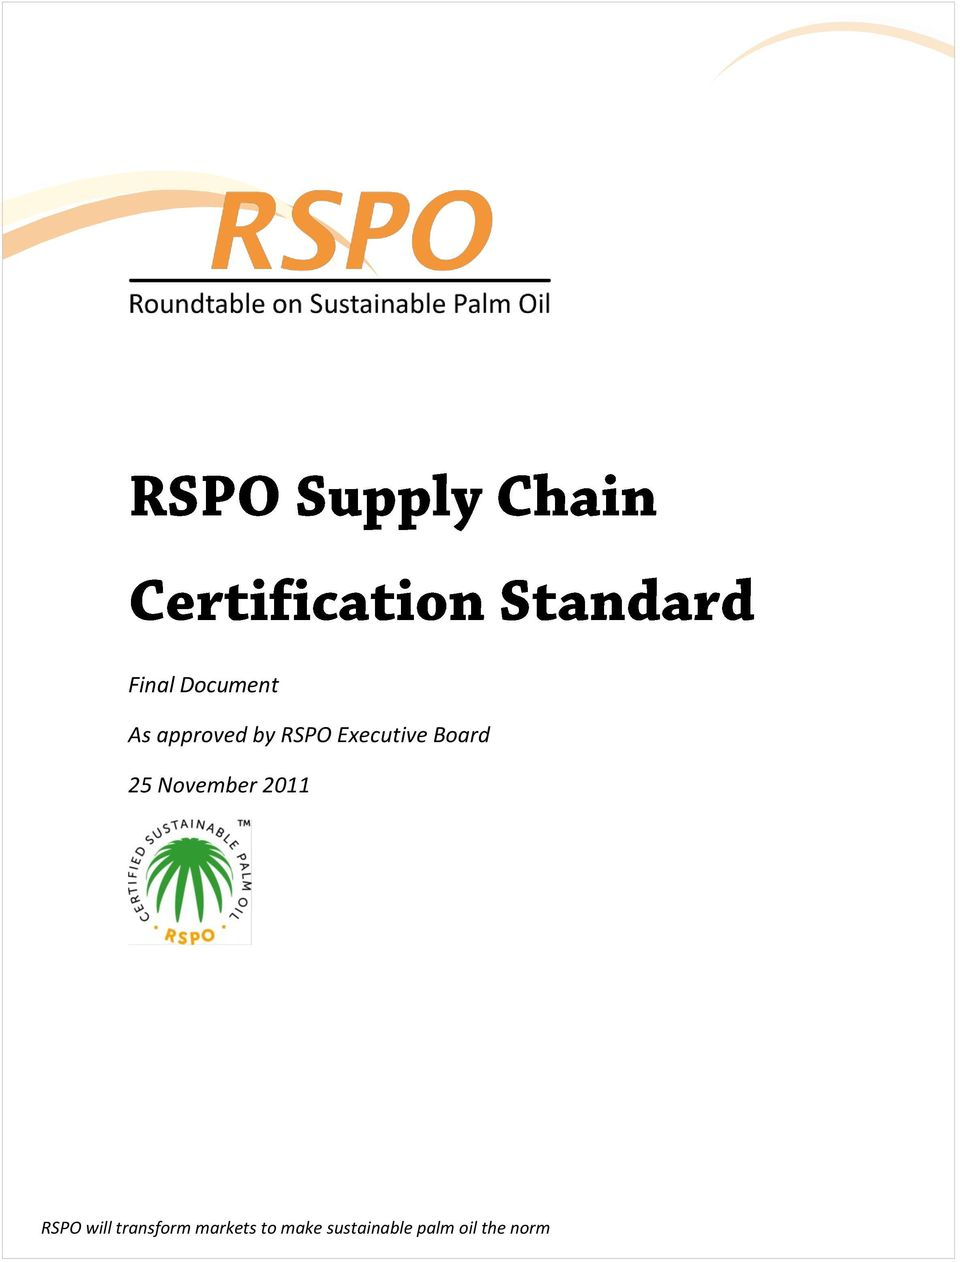 2011 RSPO will transform markets